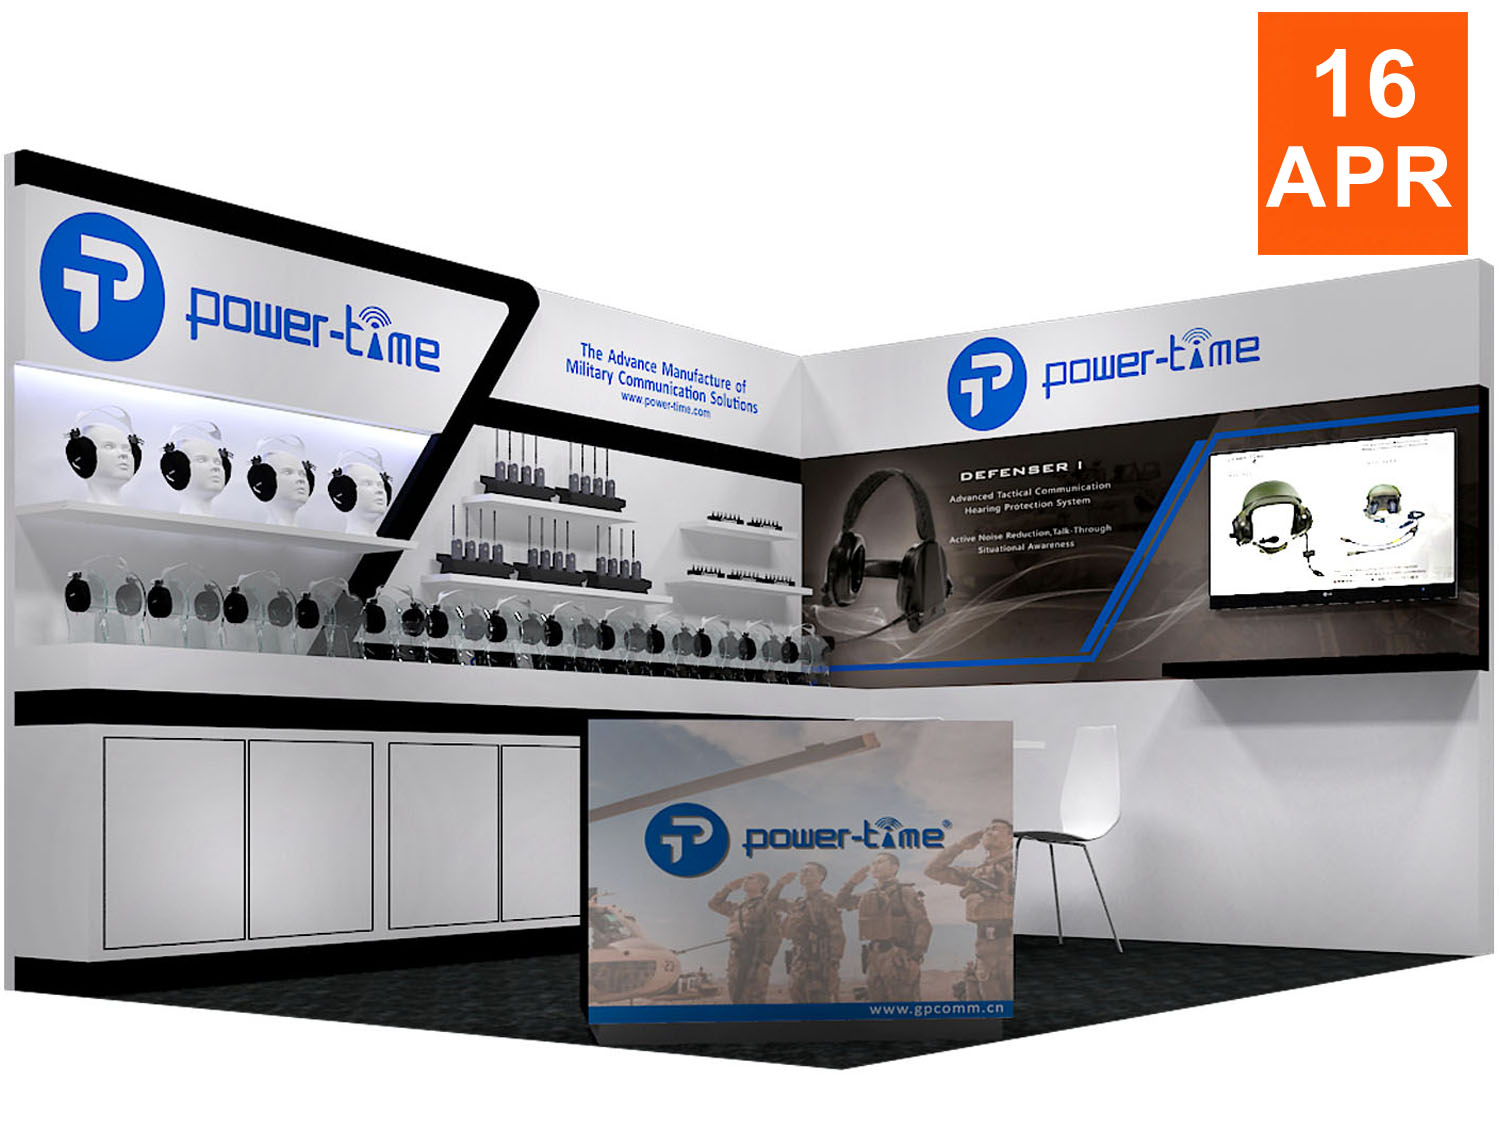 Welcome to visit us DSA Hall3 30841 in MITEC KL,Malaysia